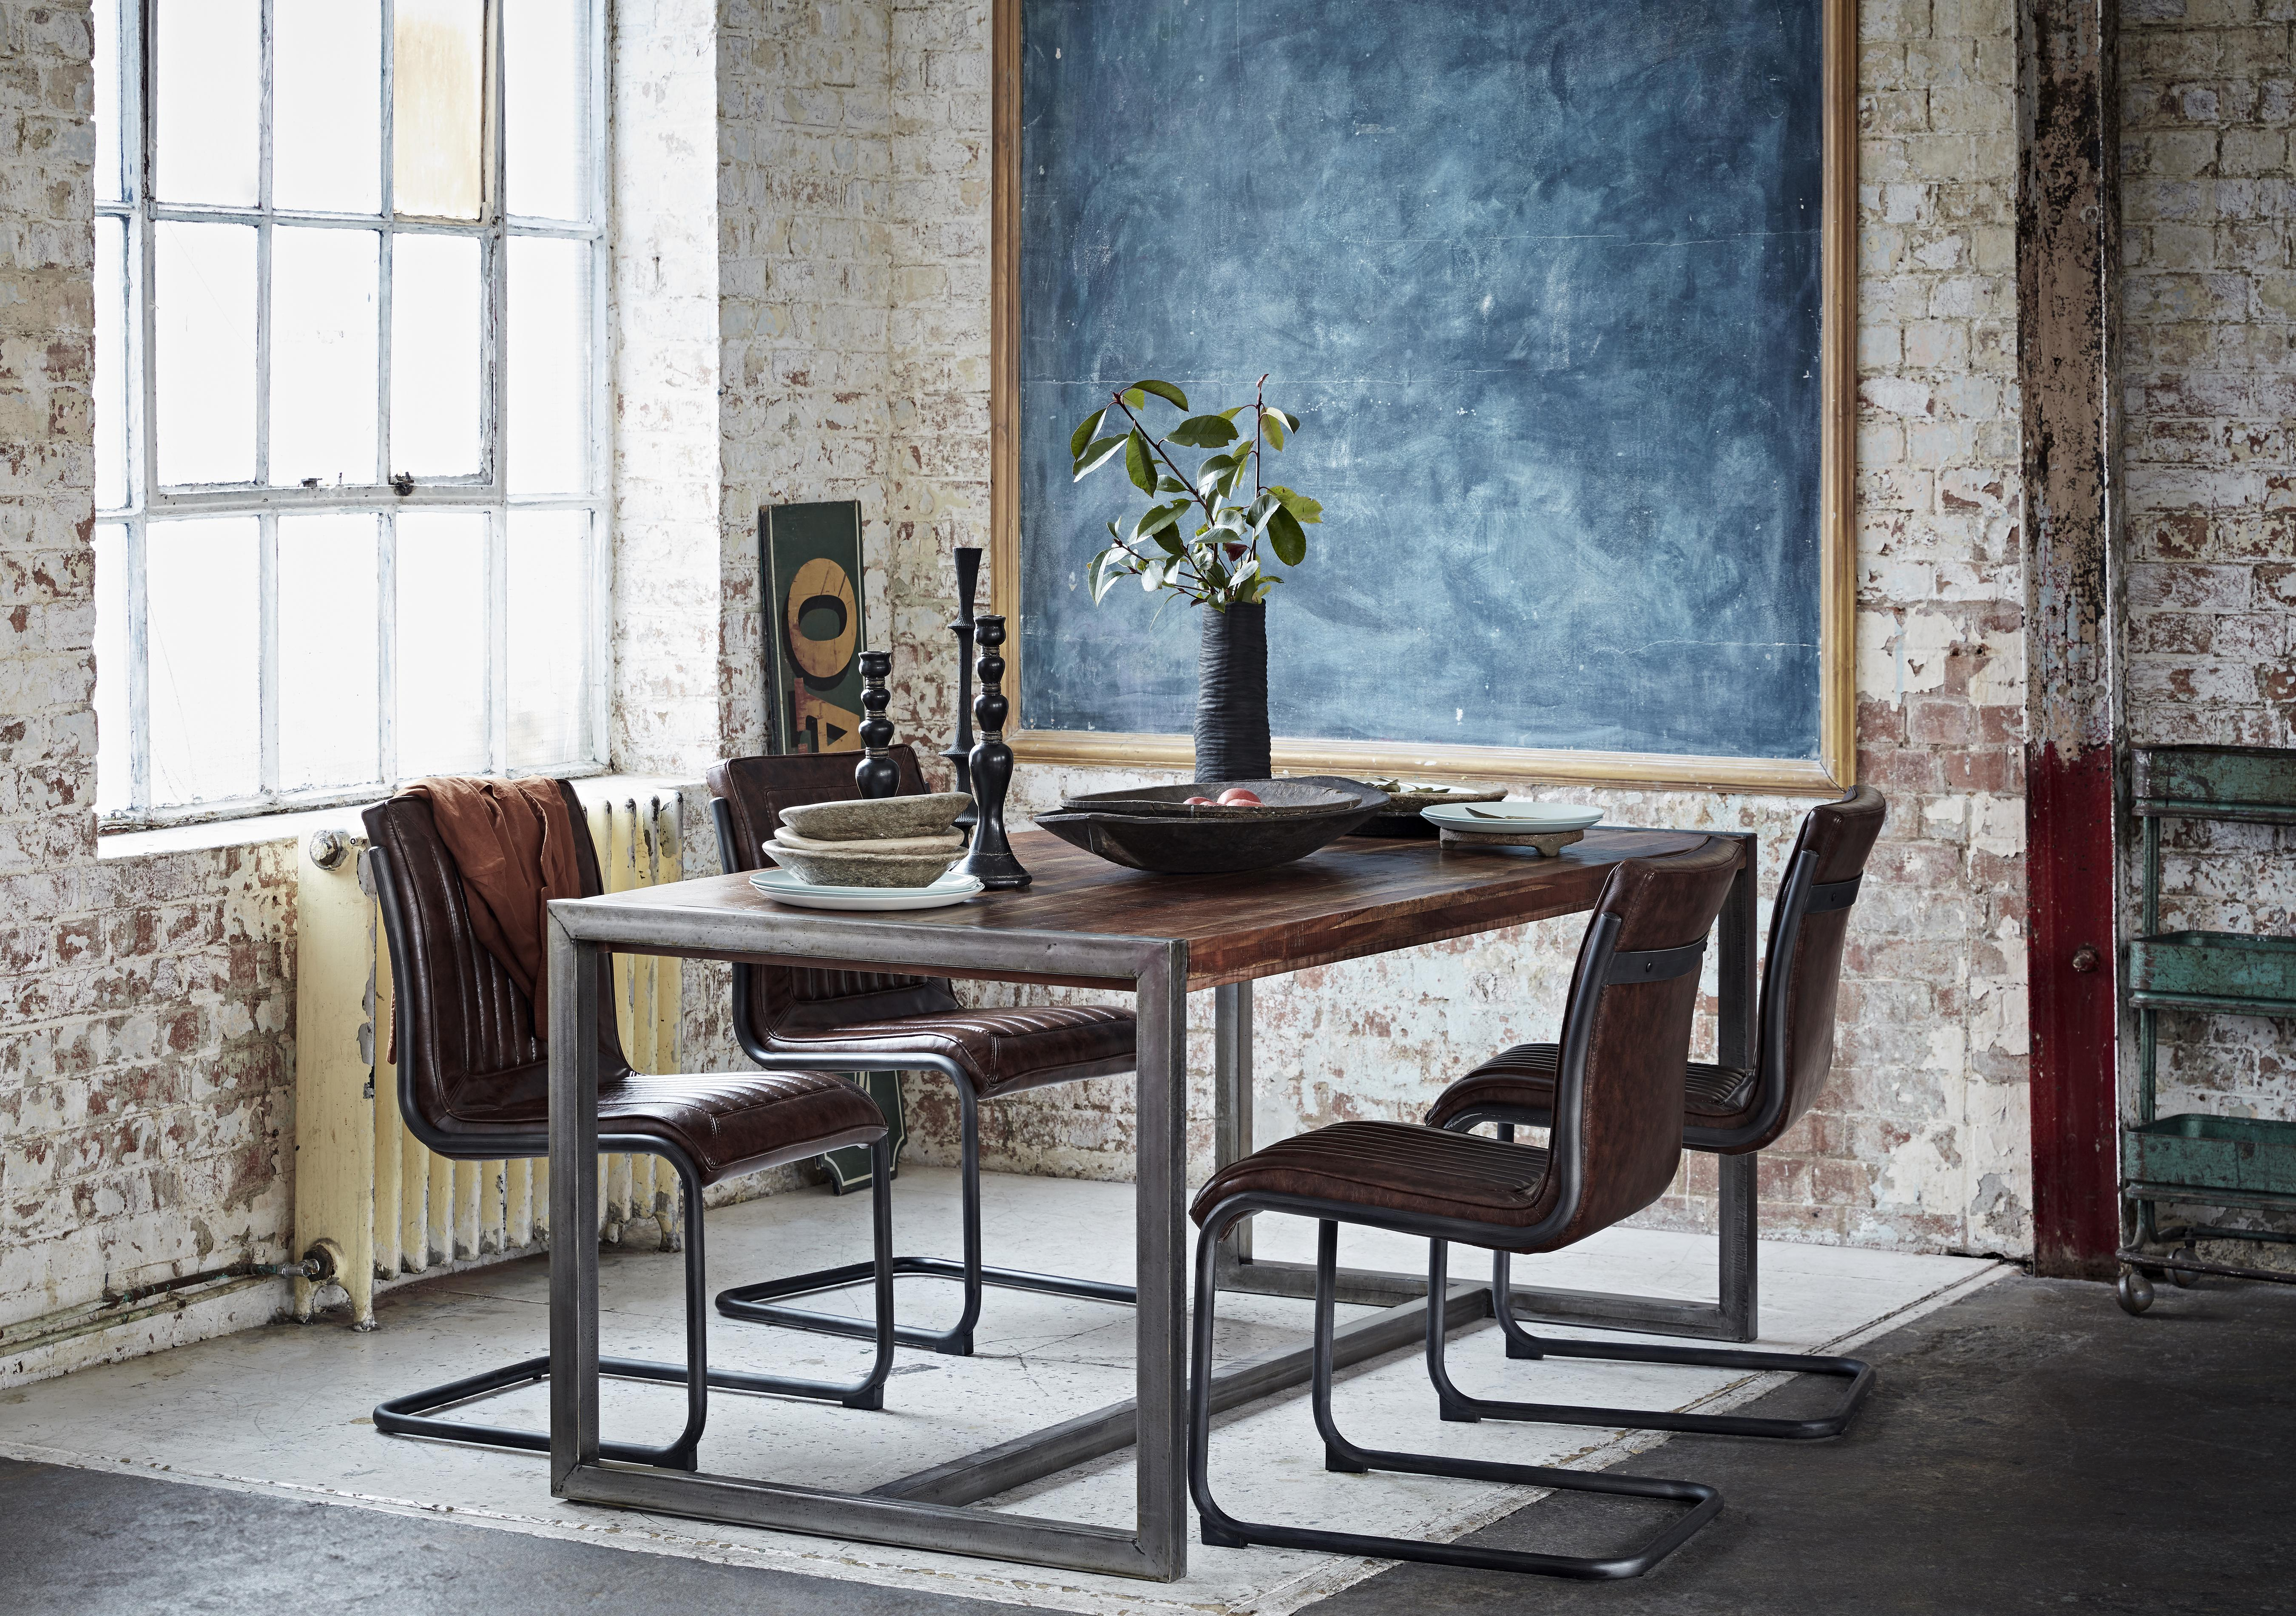 Wooden dining table with upholstered chairs